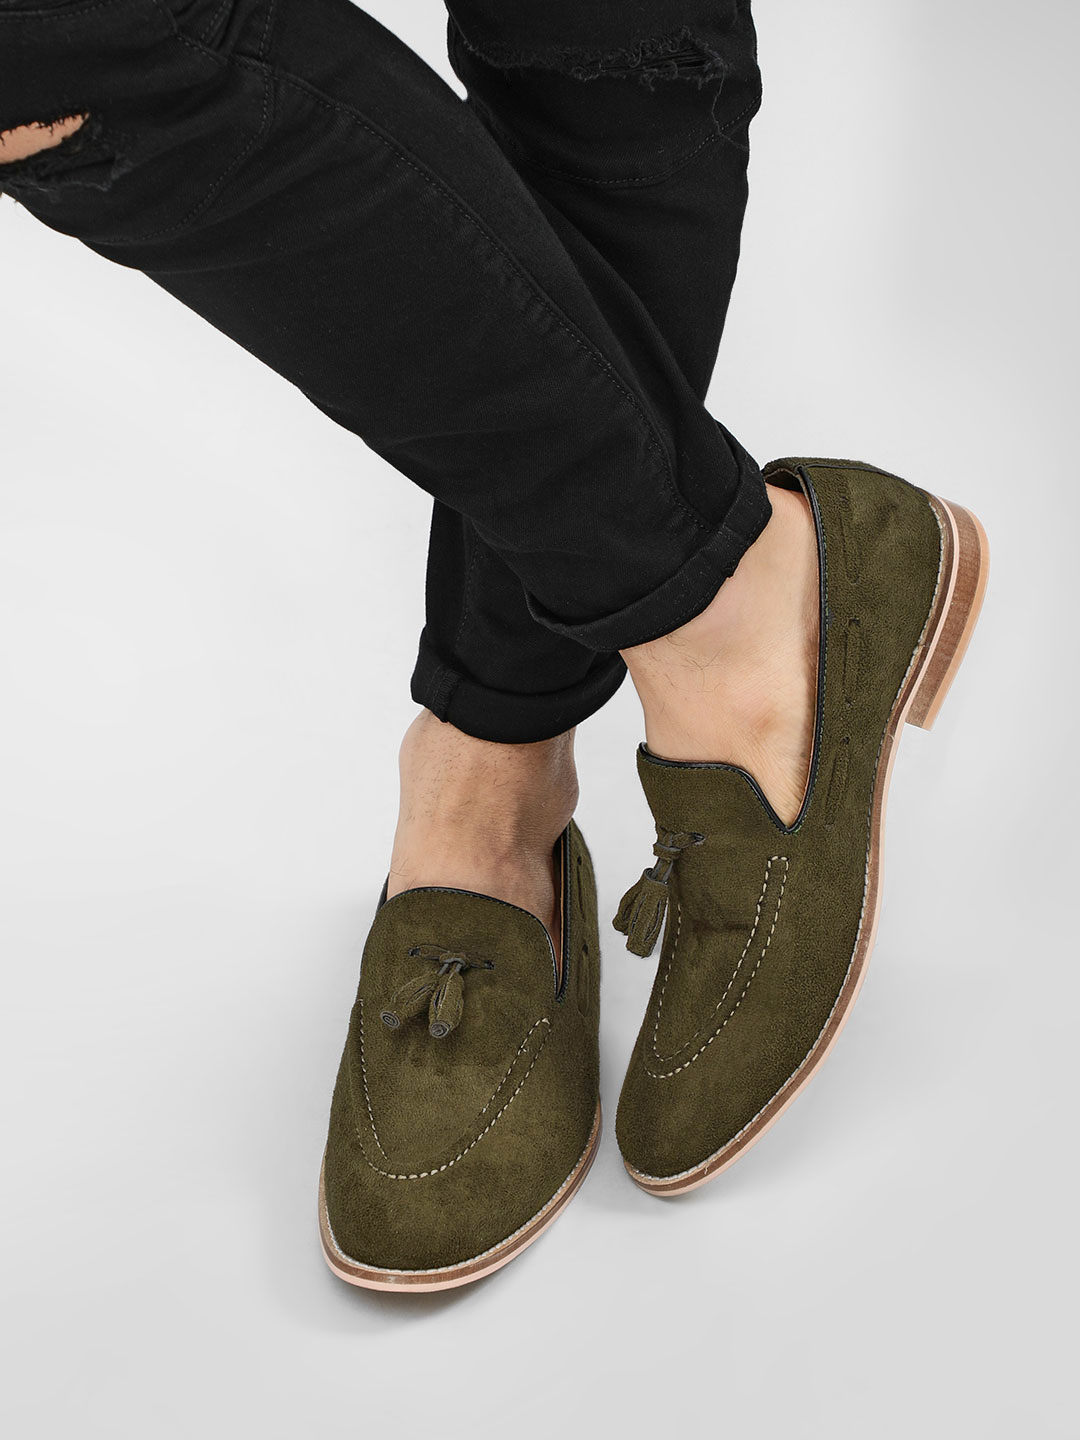 Griffin Green Tassel Trim Detail Suede Loafers 1